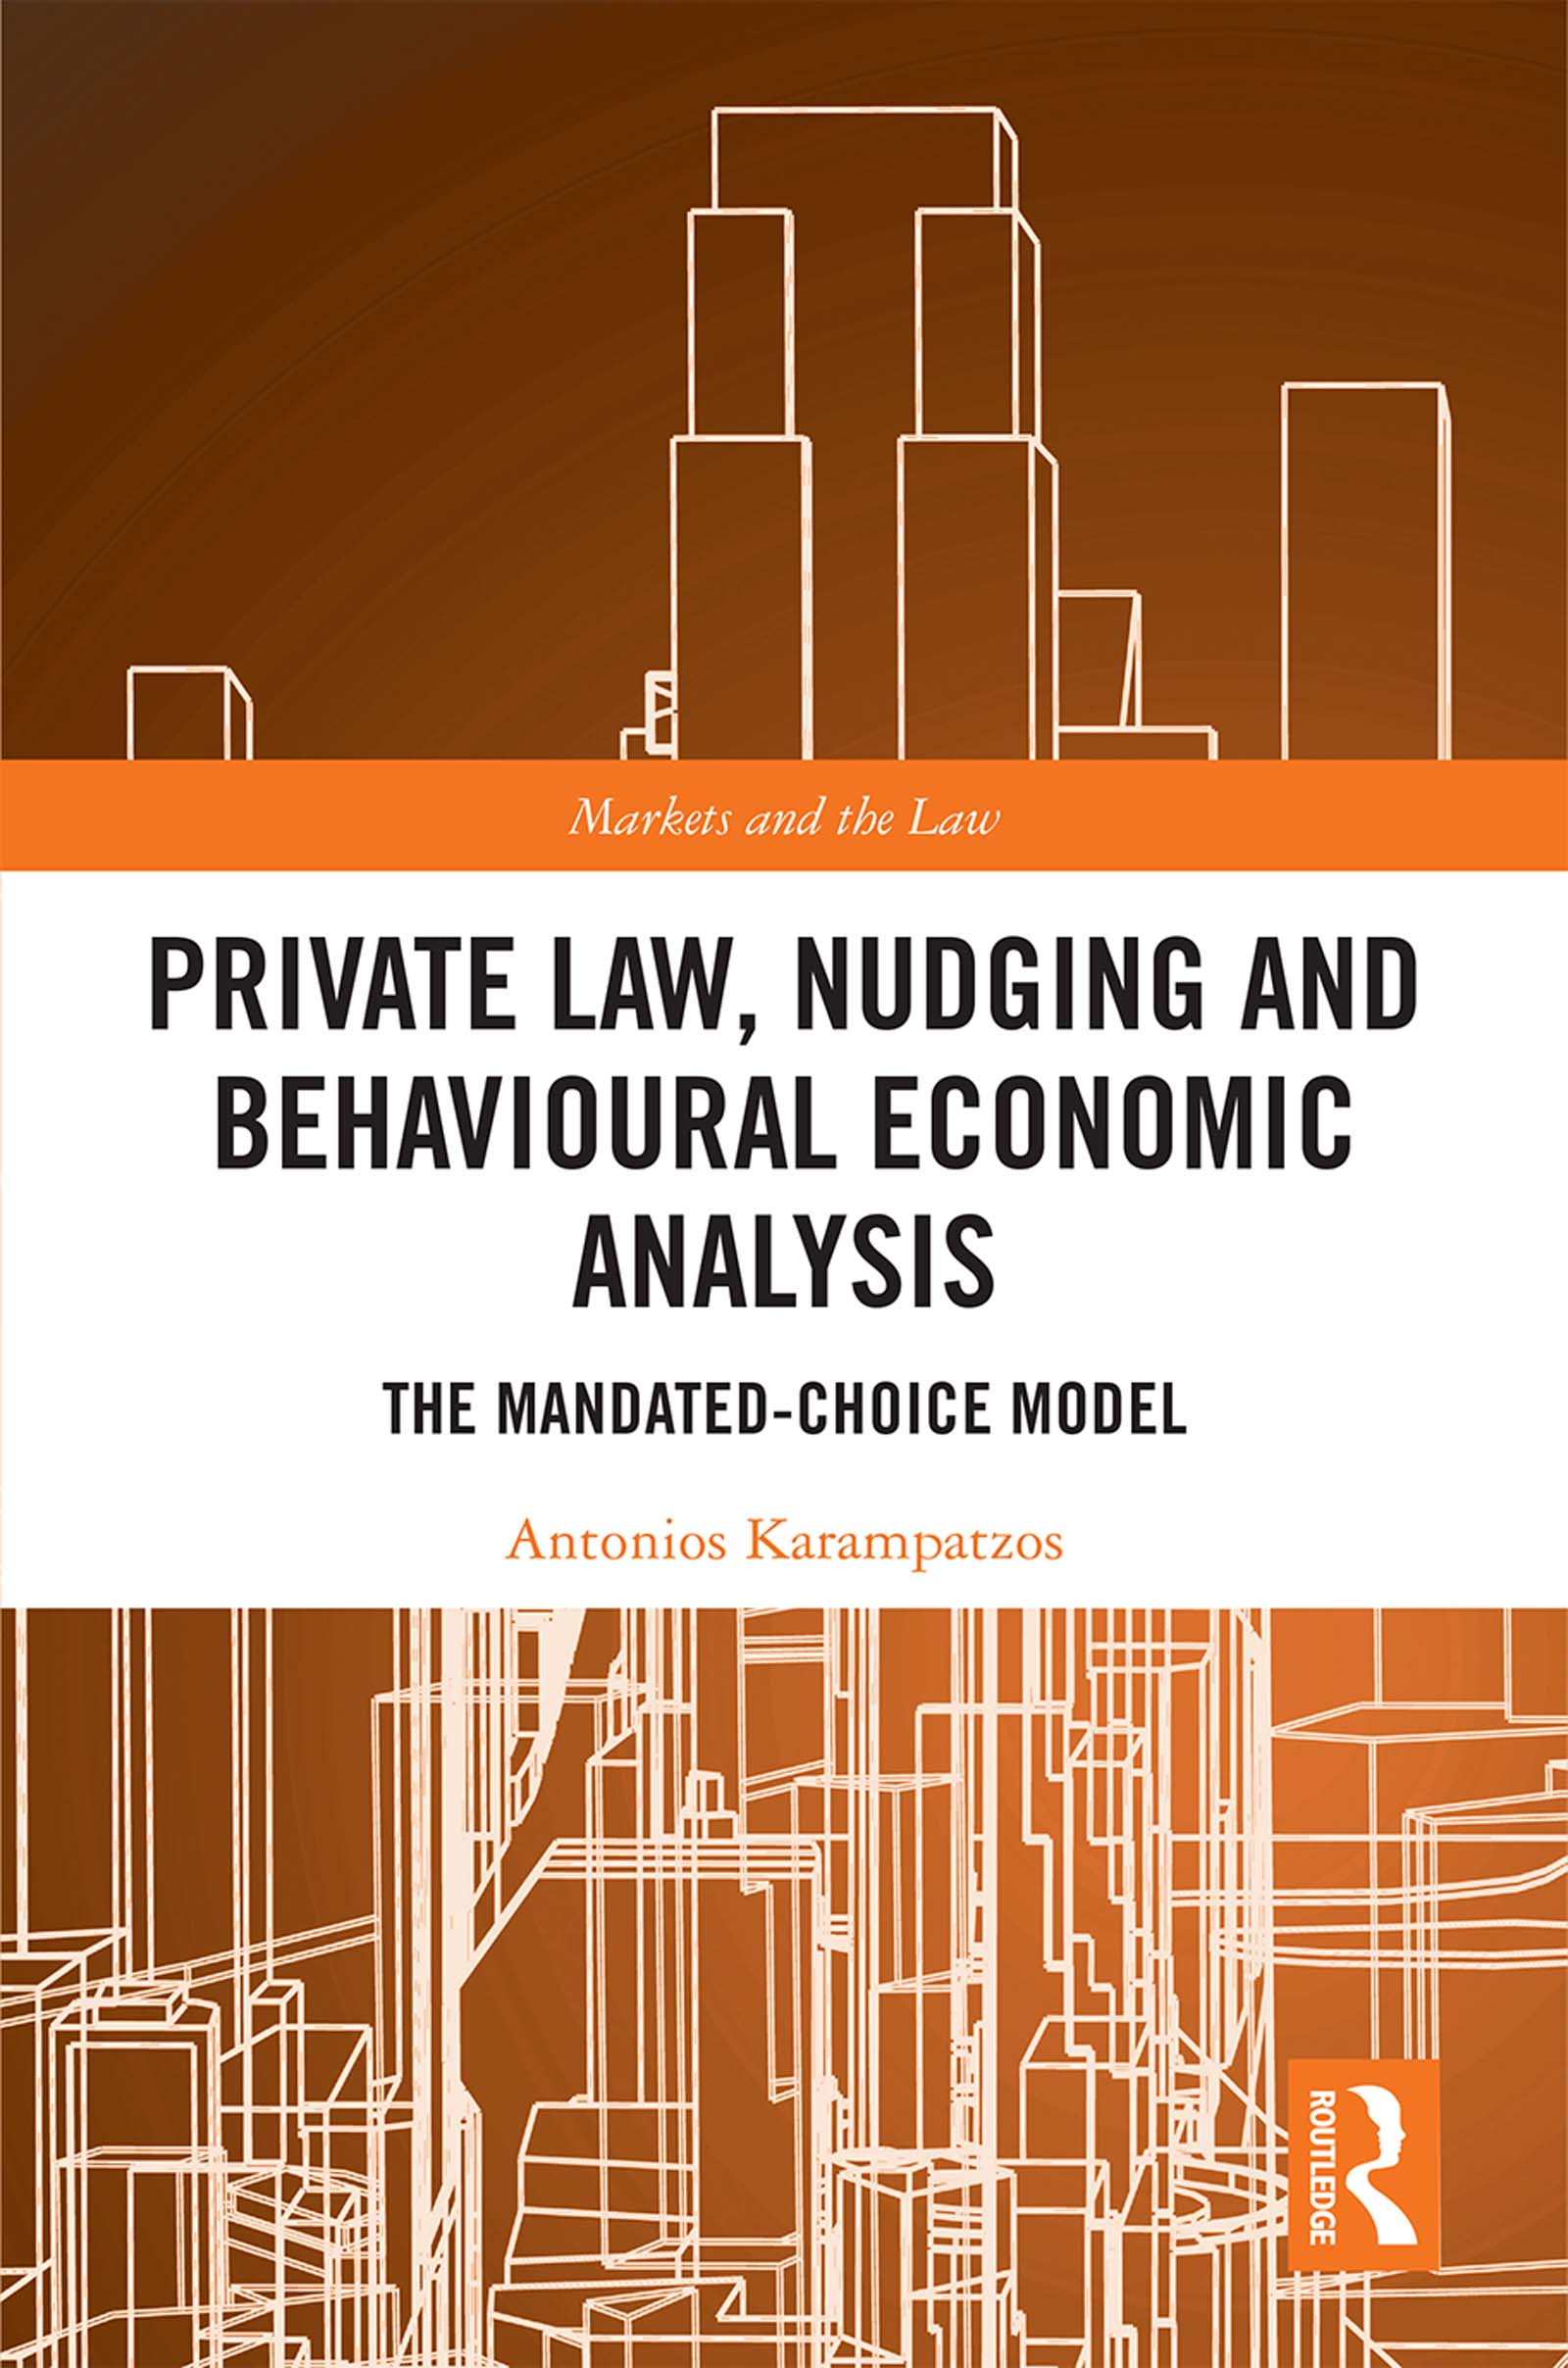 Private Law, Nudging and Behavioural Economic Analysis